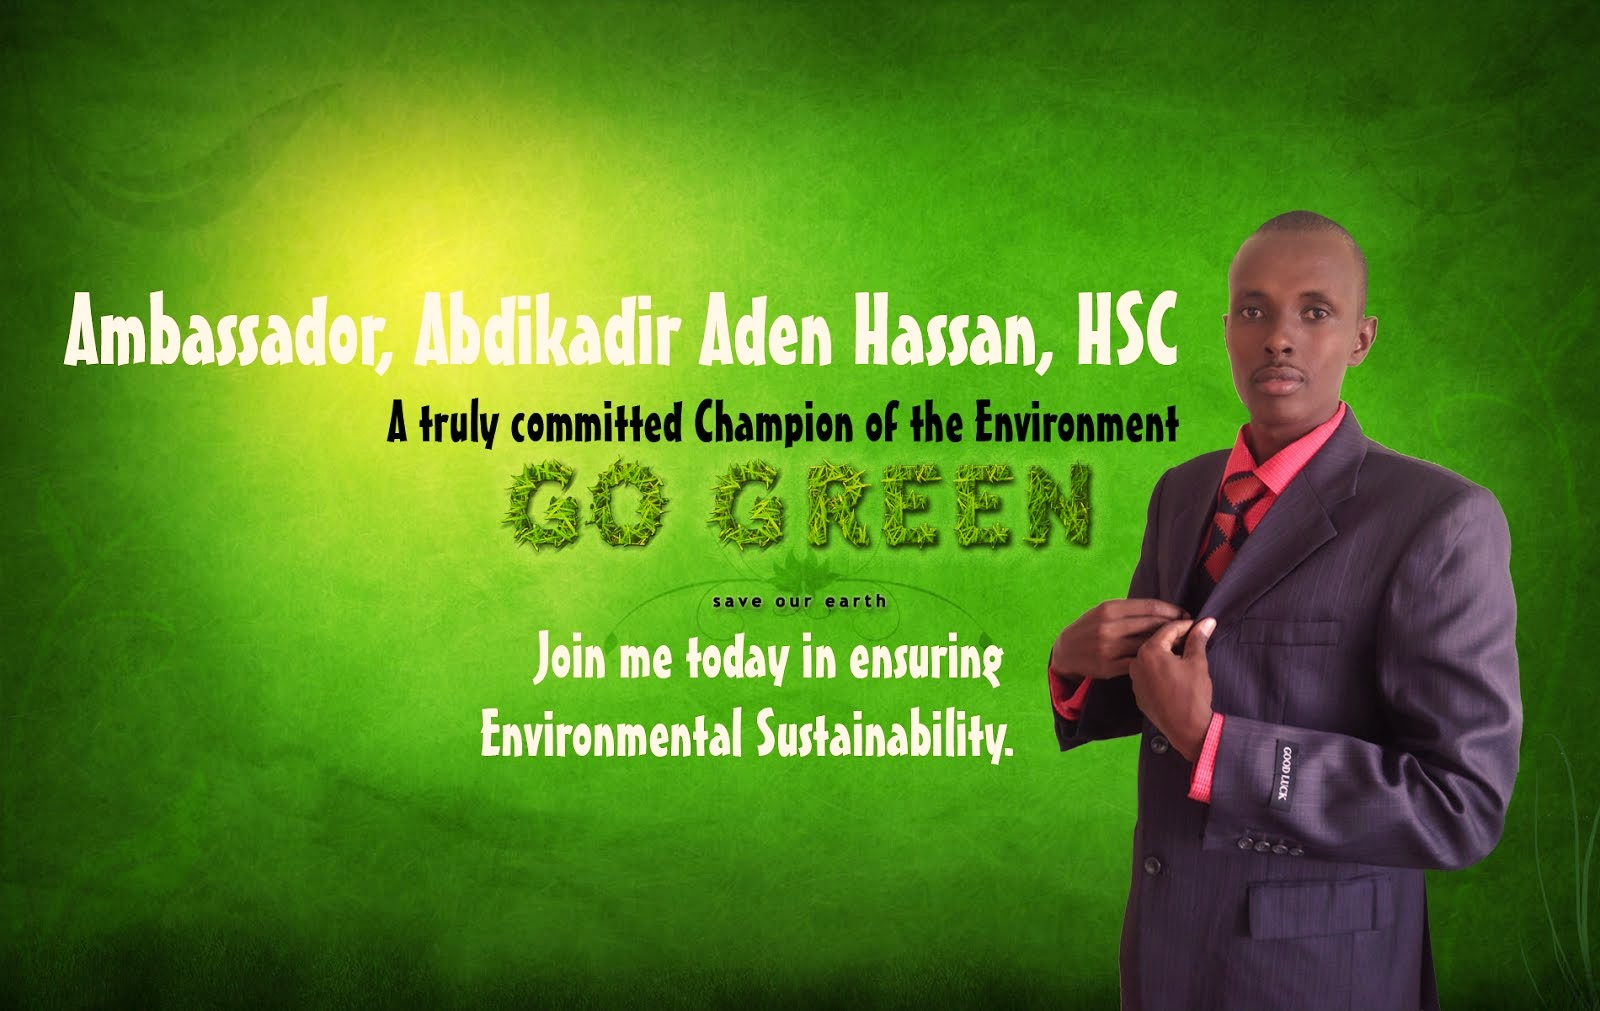 Join me in ensuring Environmental Sustainability